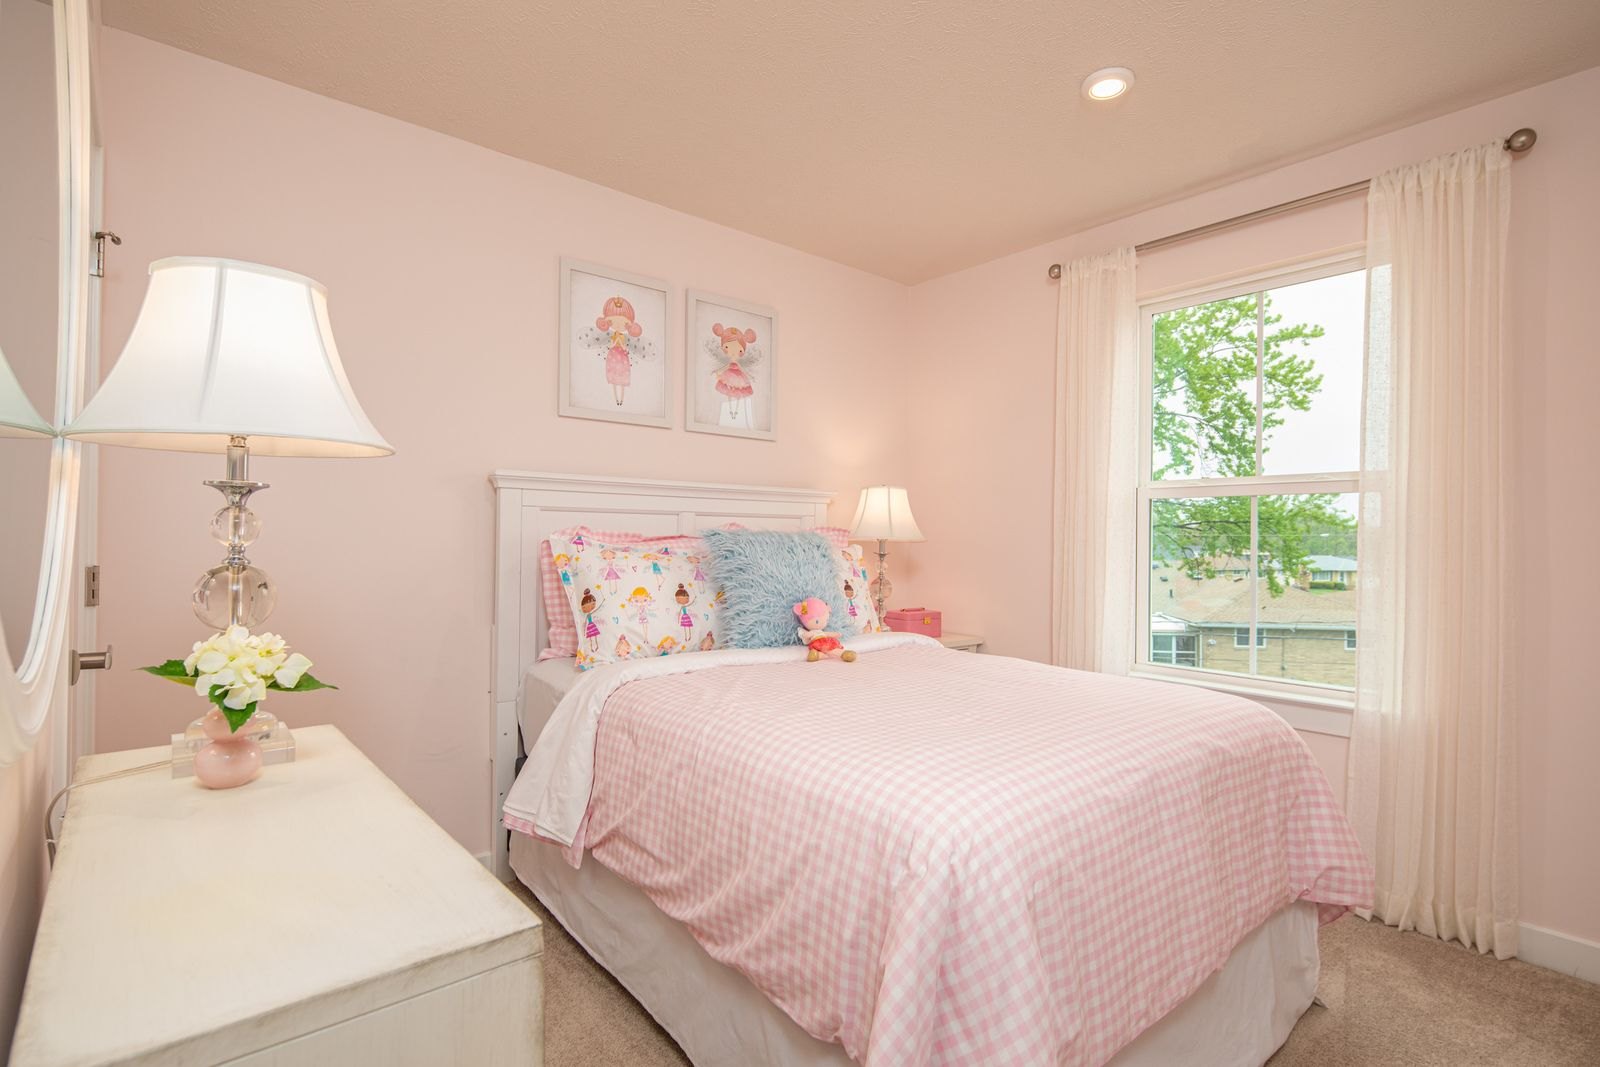 Bedroom featured in the Allegheny By Ryan Homes in Nashville, TN